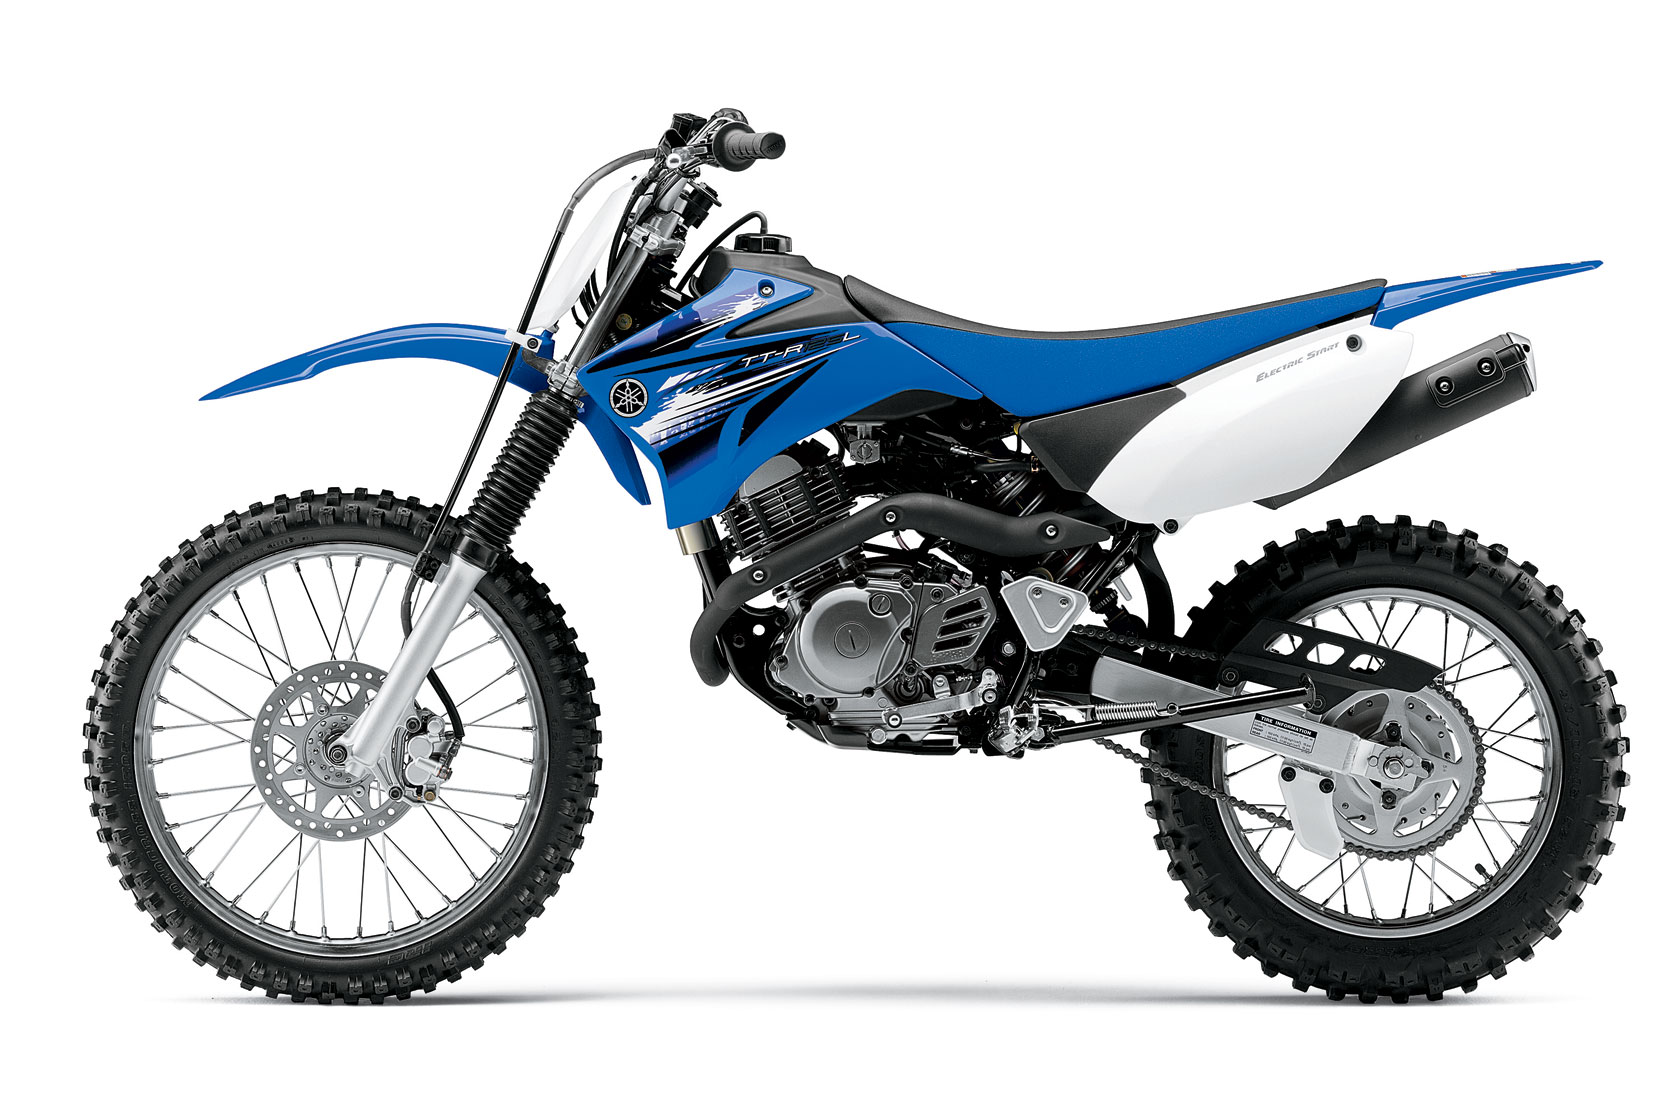 2012 yamaha tt r125le review for Yamaha ttr models